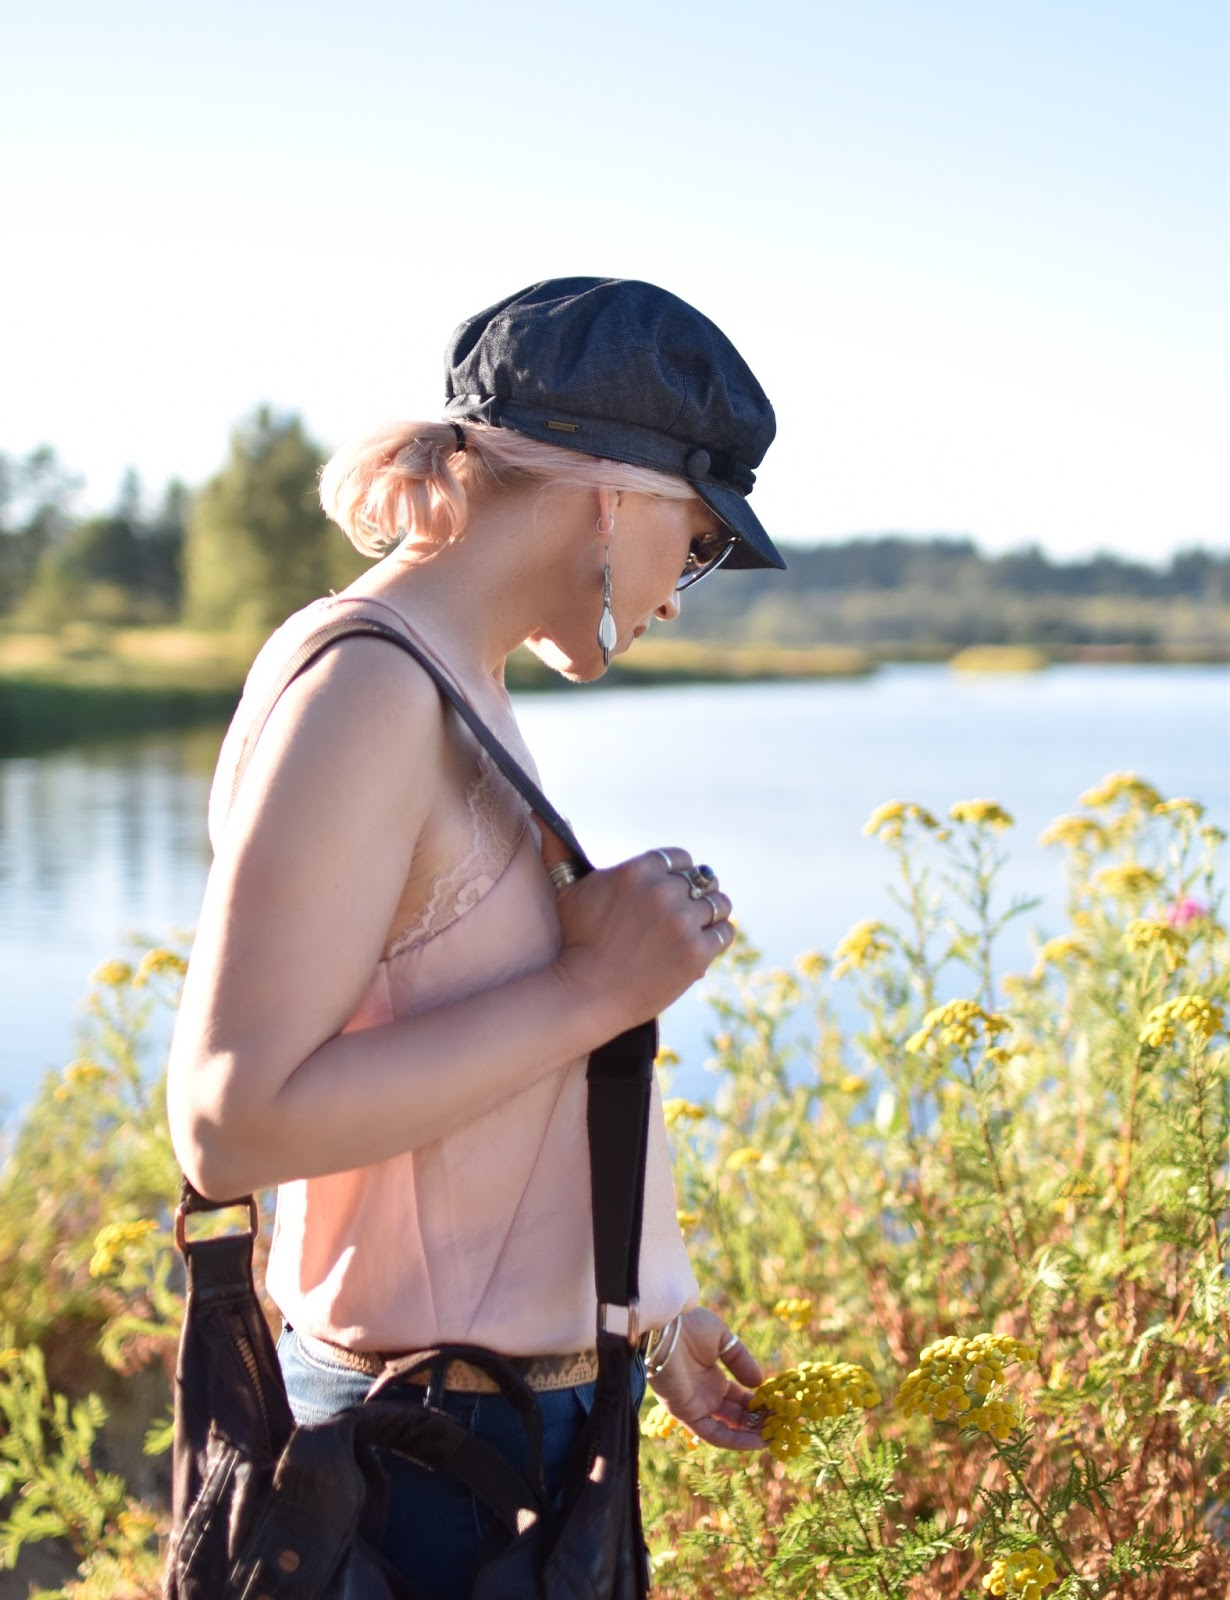 Monika Faulkner personal style inspiration - pink lace-trimmed camisole, baker boy cap